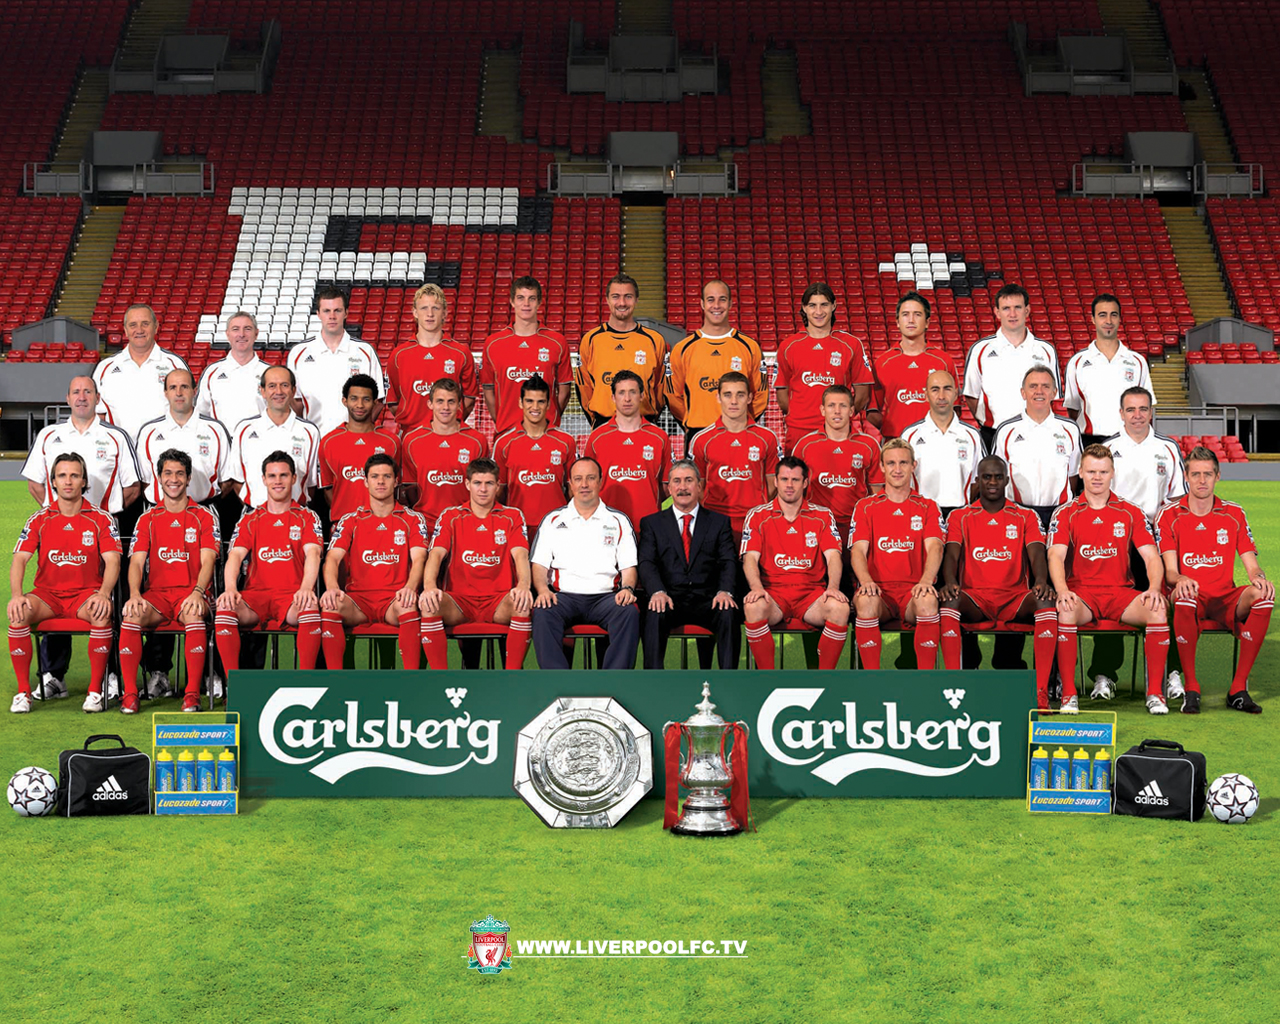 Football Clubs: Sports And Players: Liverpool Football Club